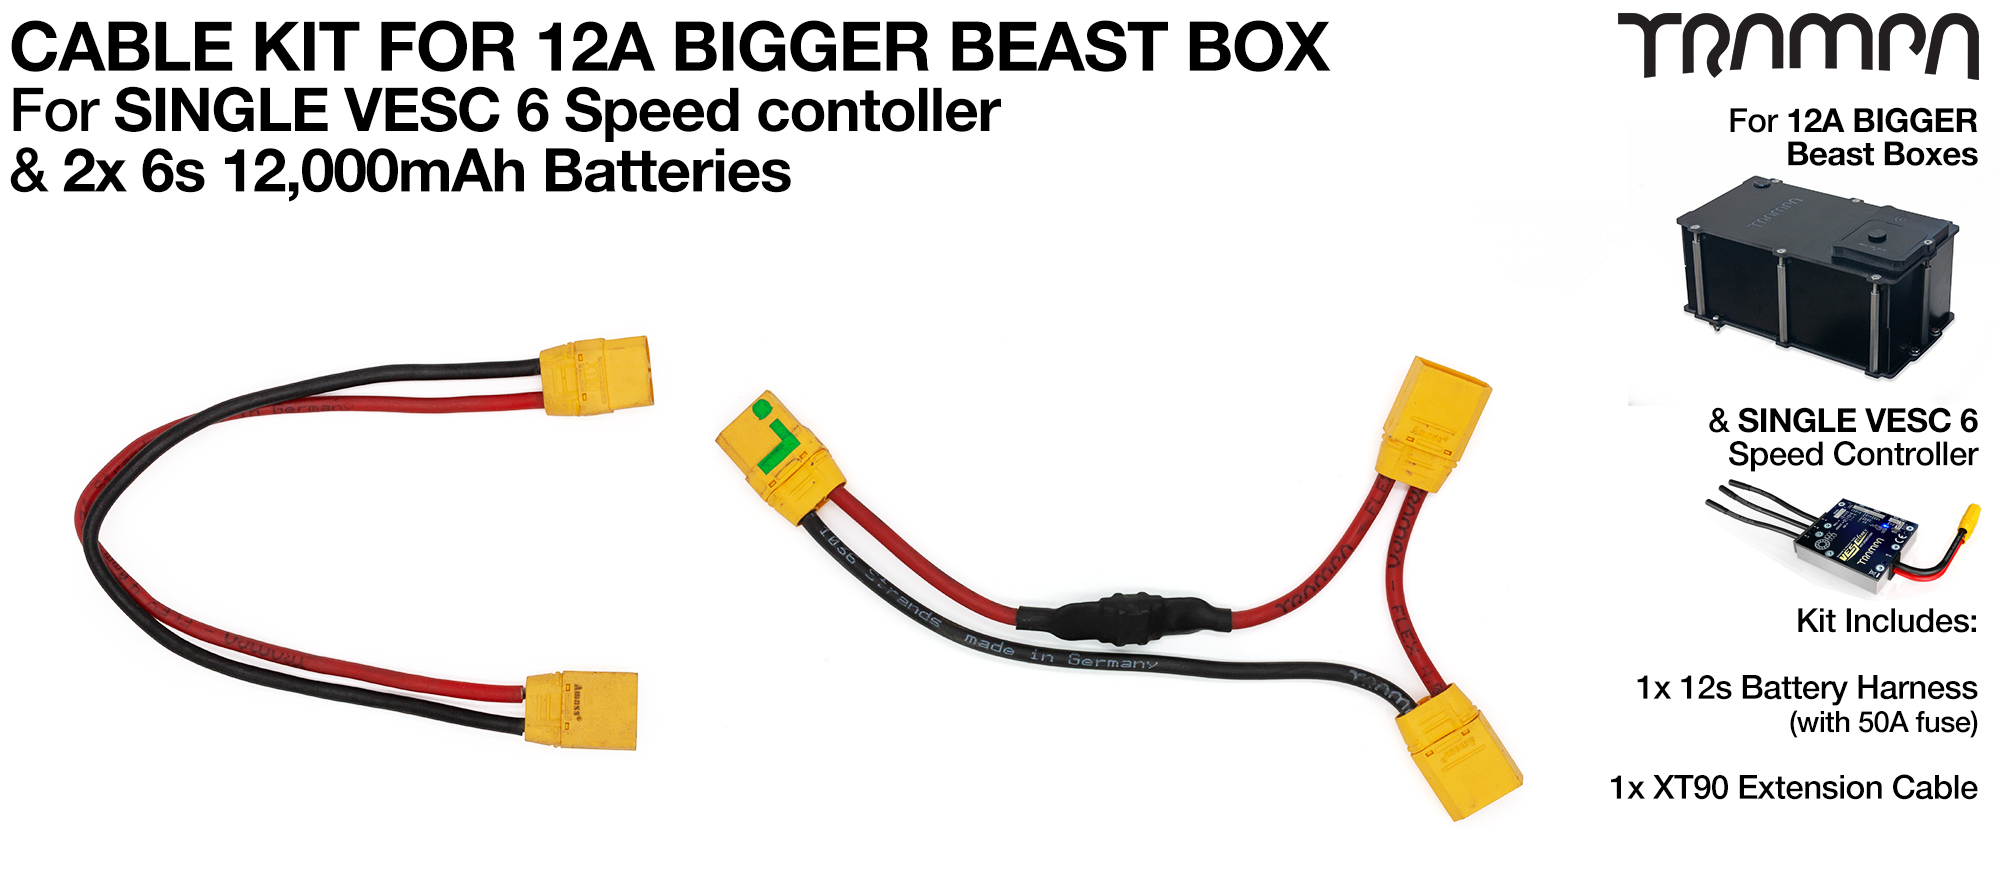 12A Bigger BEAST BOX & Single VESC 6 Cable Kit